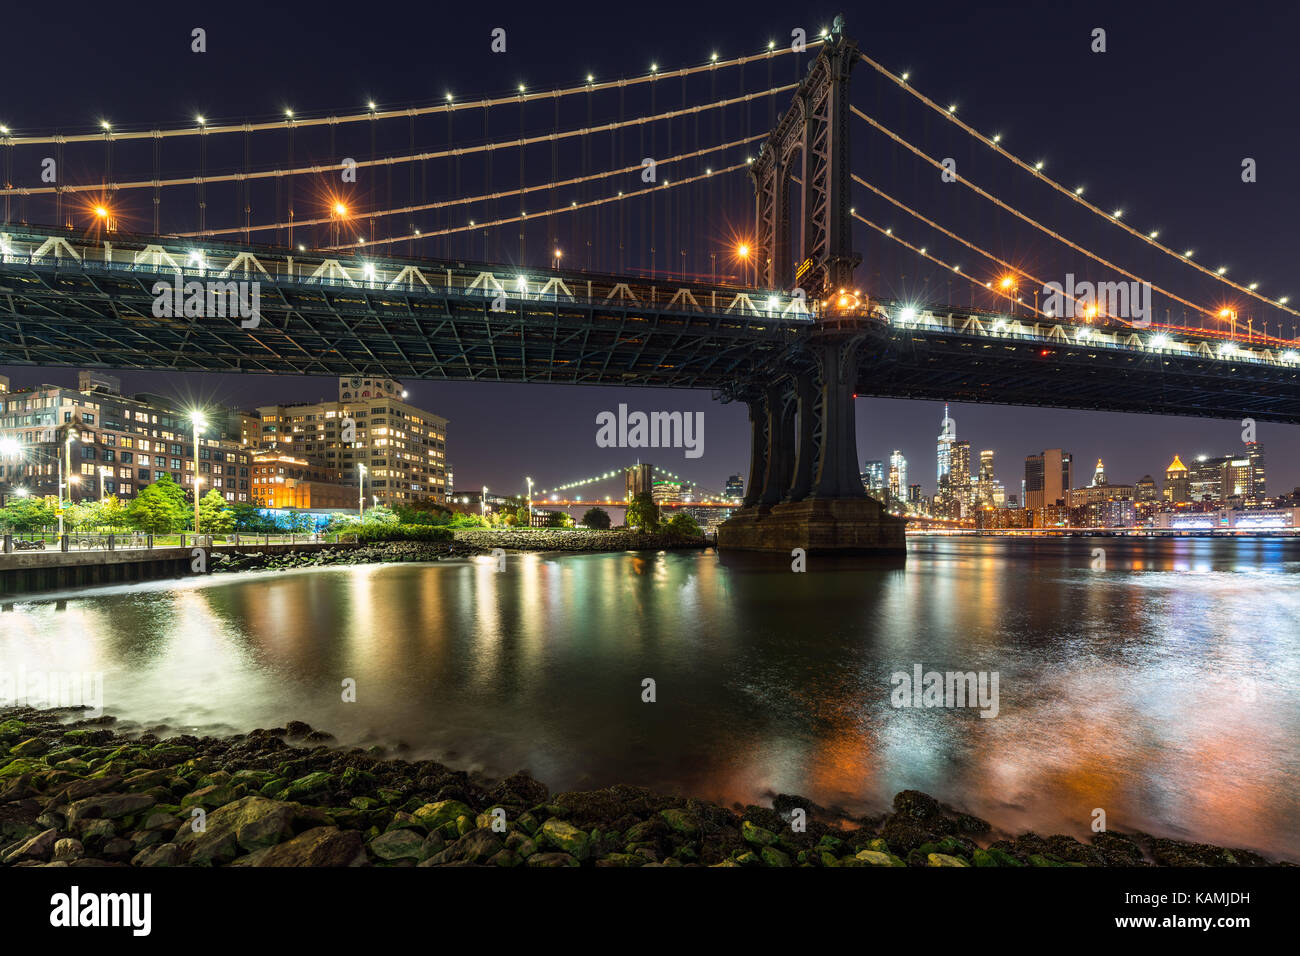 Main Street Park und die Manhattan Bridge bei Nacht. Dumbo, Brooklyn, New York City Stockbild